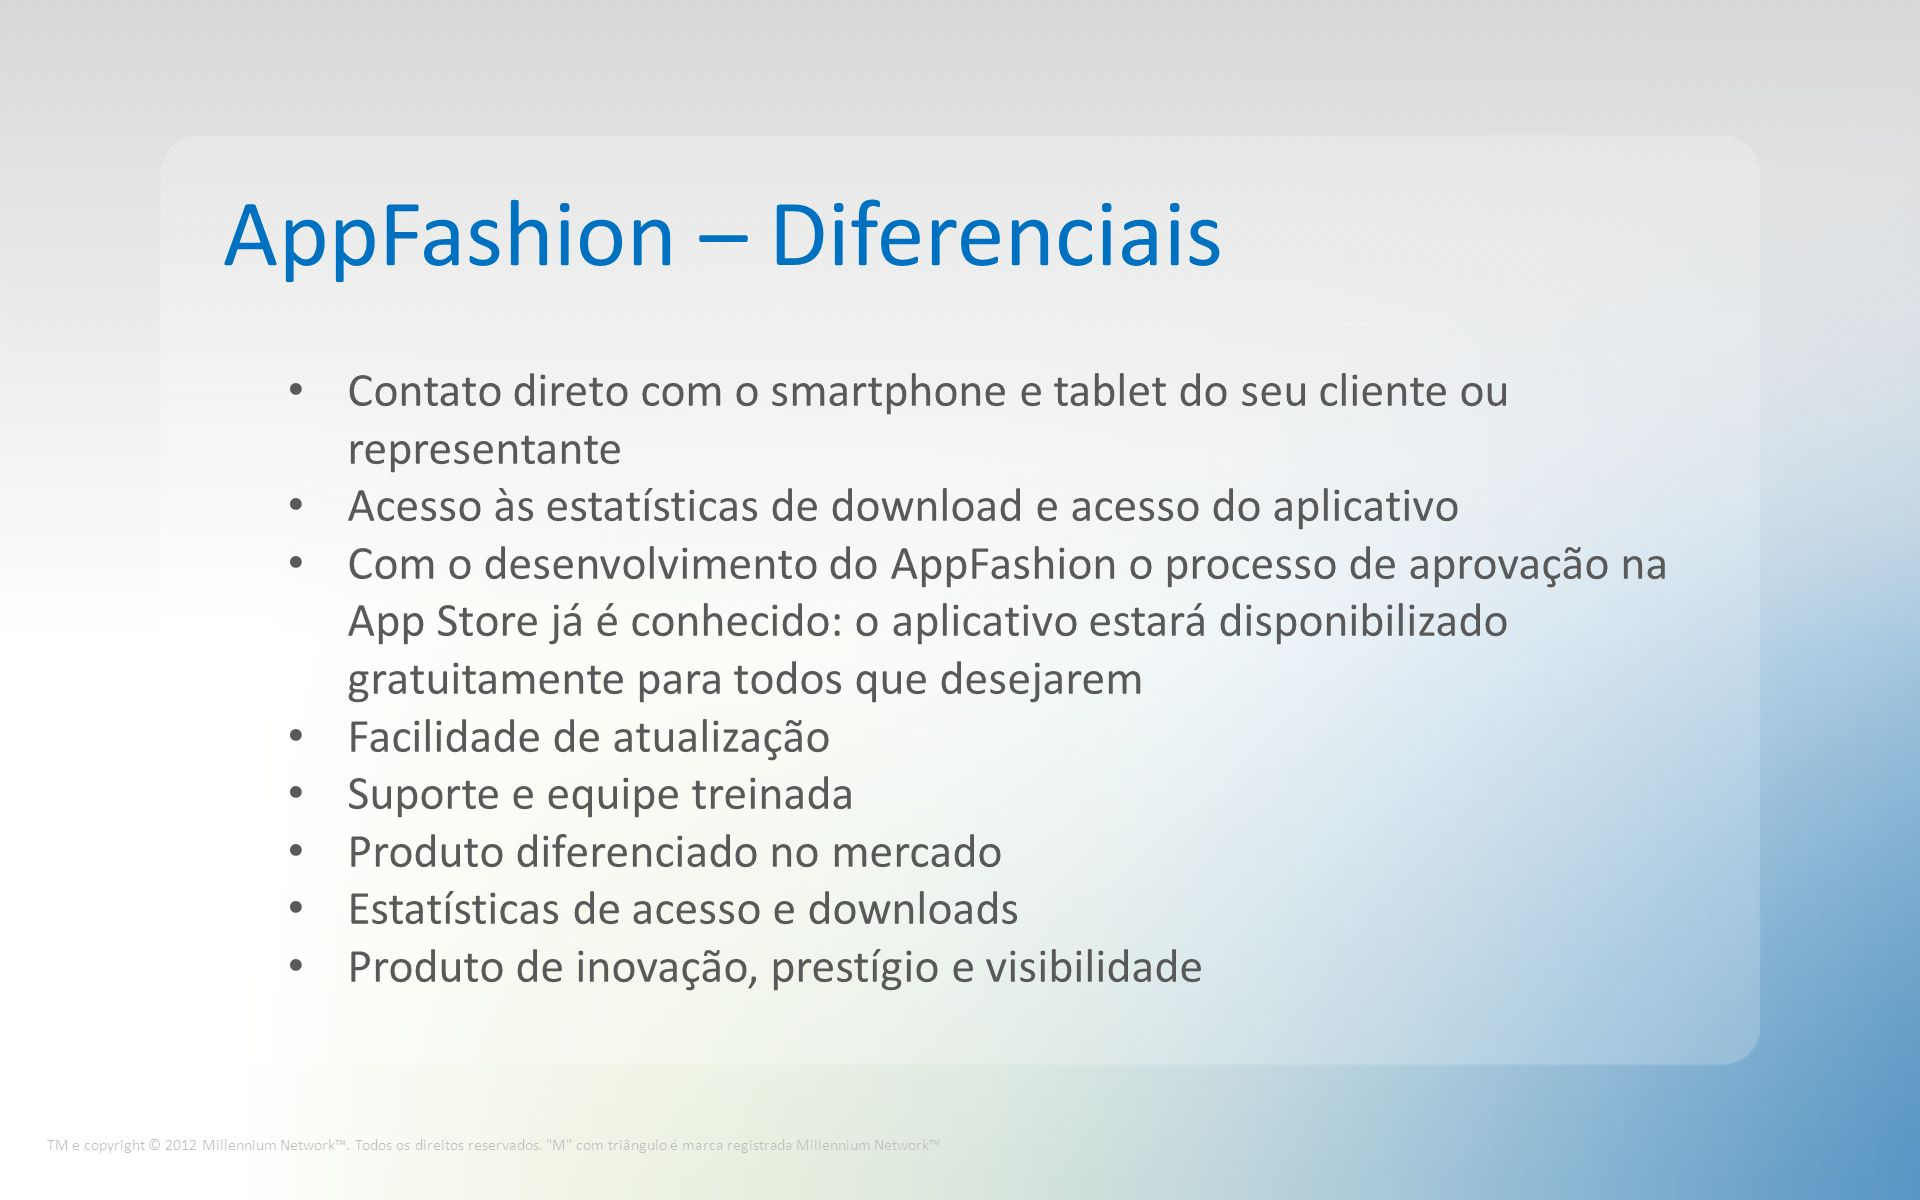 AppFashion – Diferenciais TM e copyright © 2012 Millennium Network.